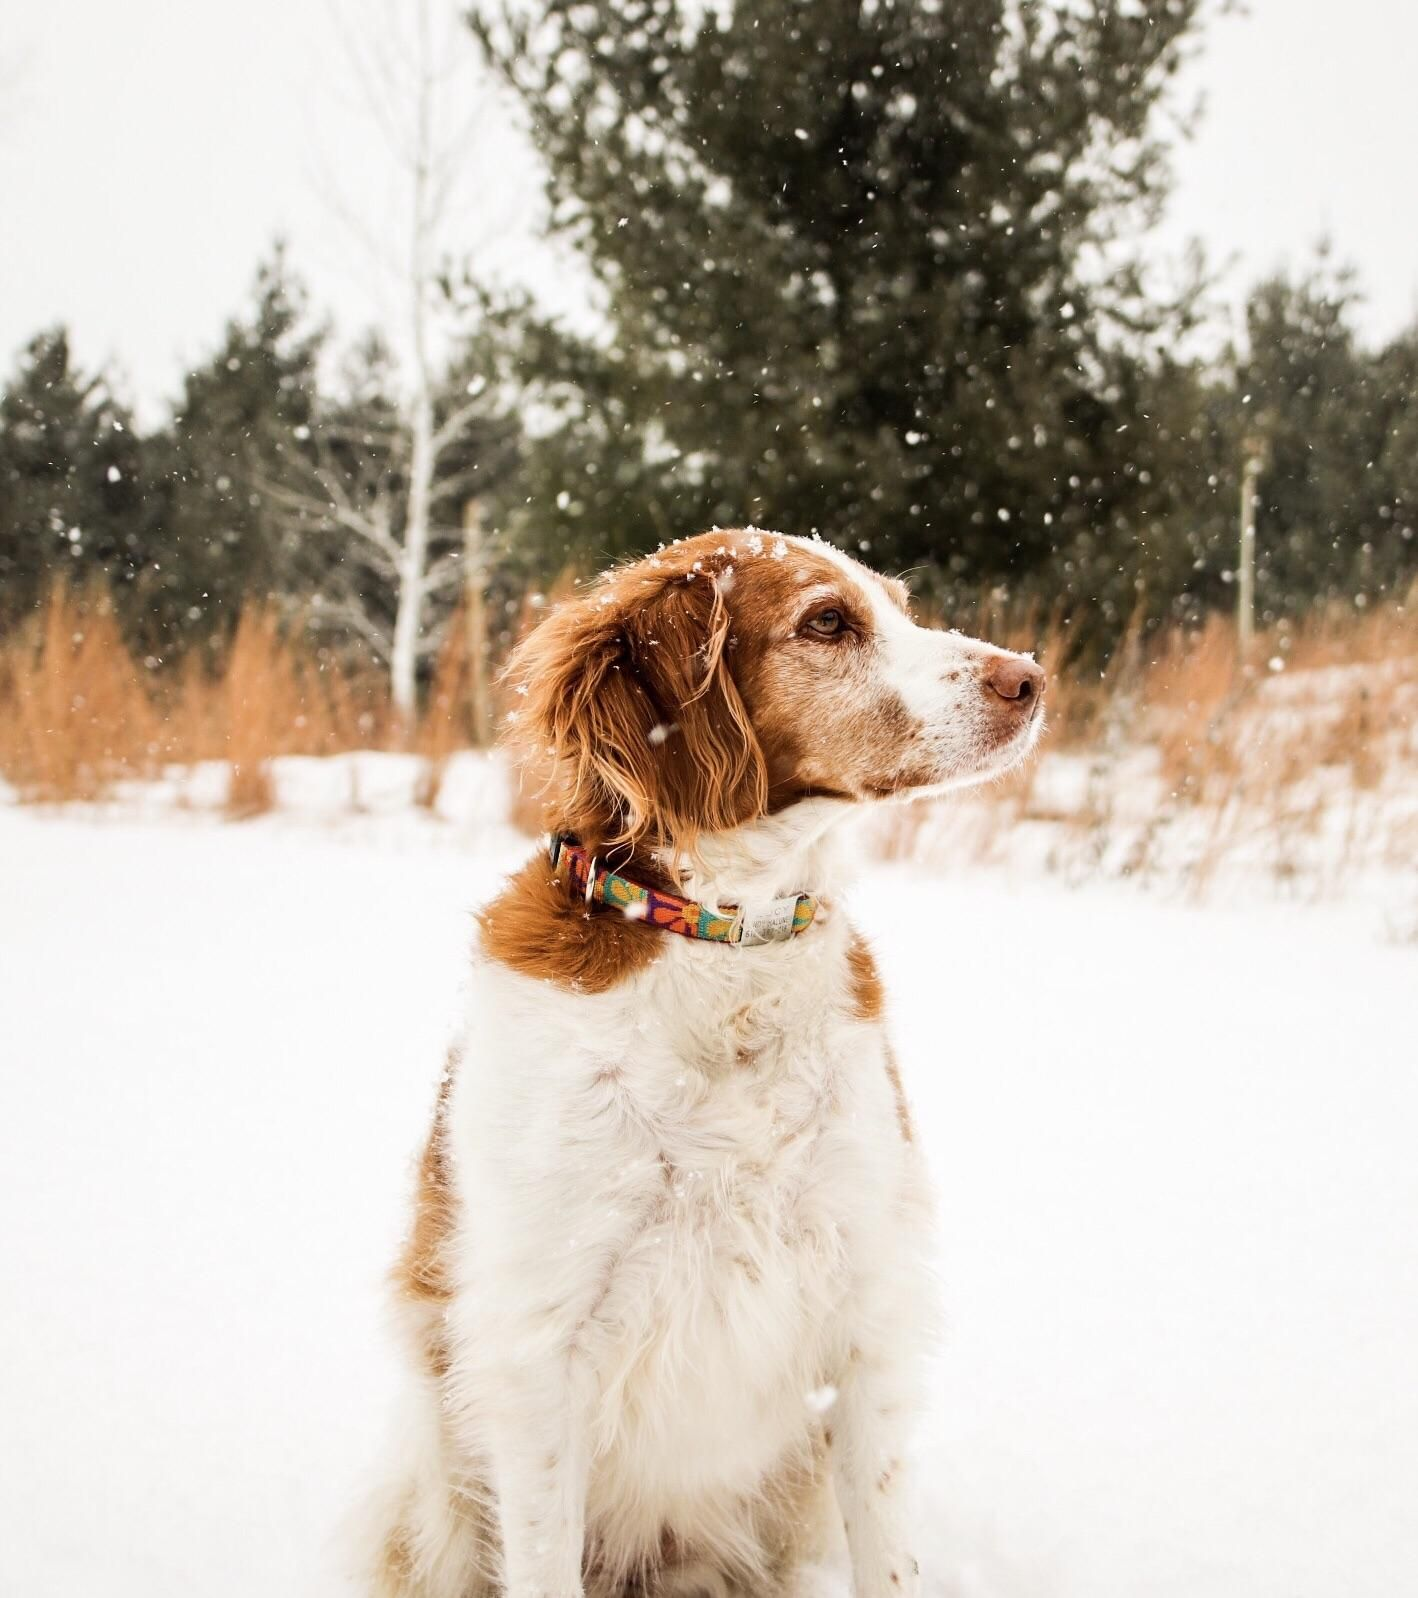 Lucy quietly observes the snowfall #dogs #pets #dog #Adopt #love #cute #animals #puppy